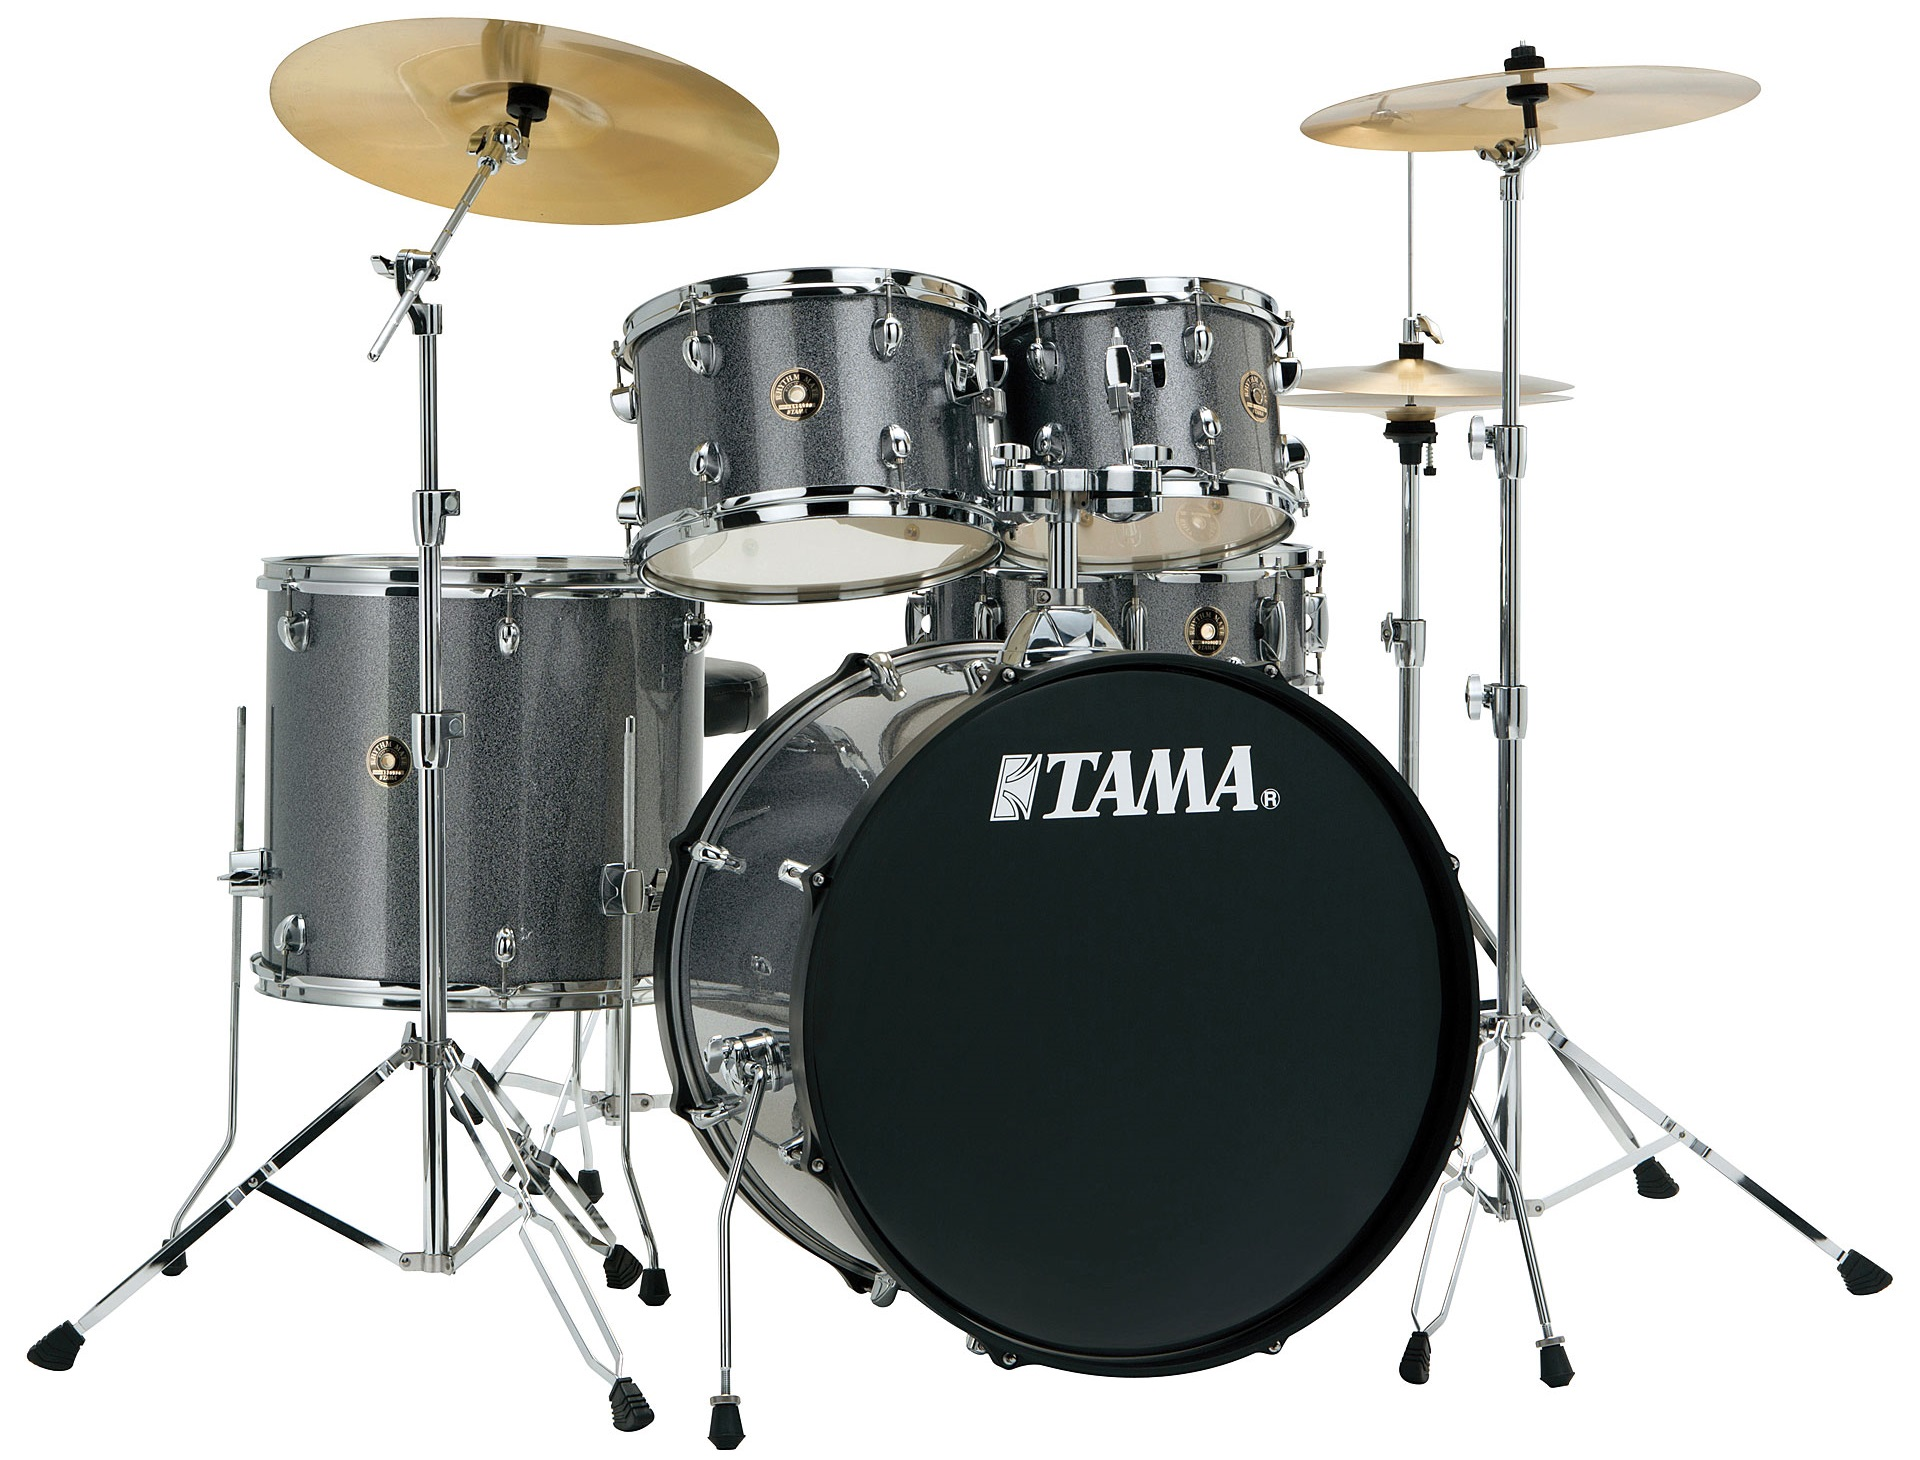 Fotografie Tama Rhythm Mate Rock set Galaxy Silver